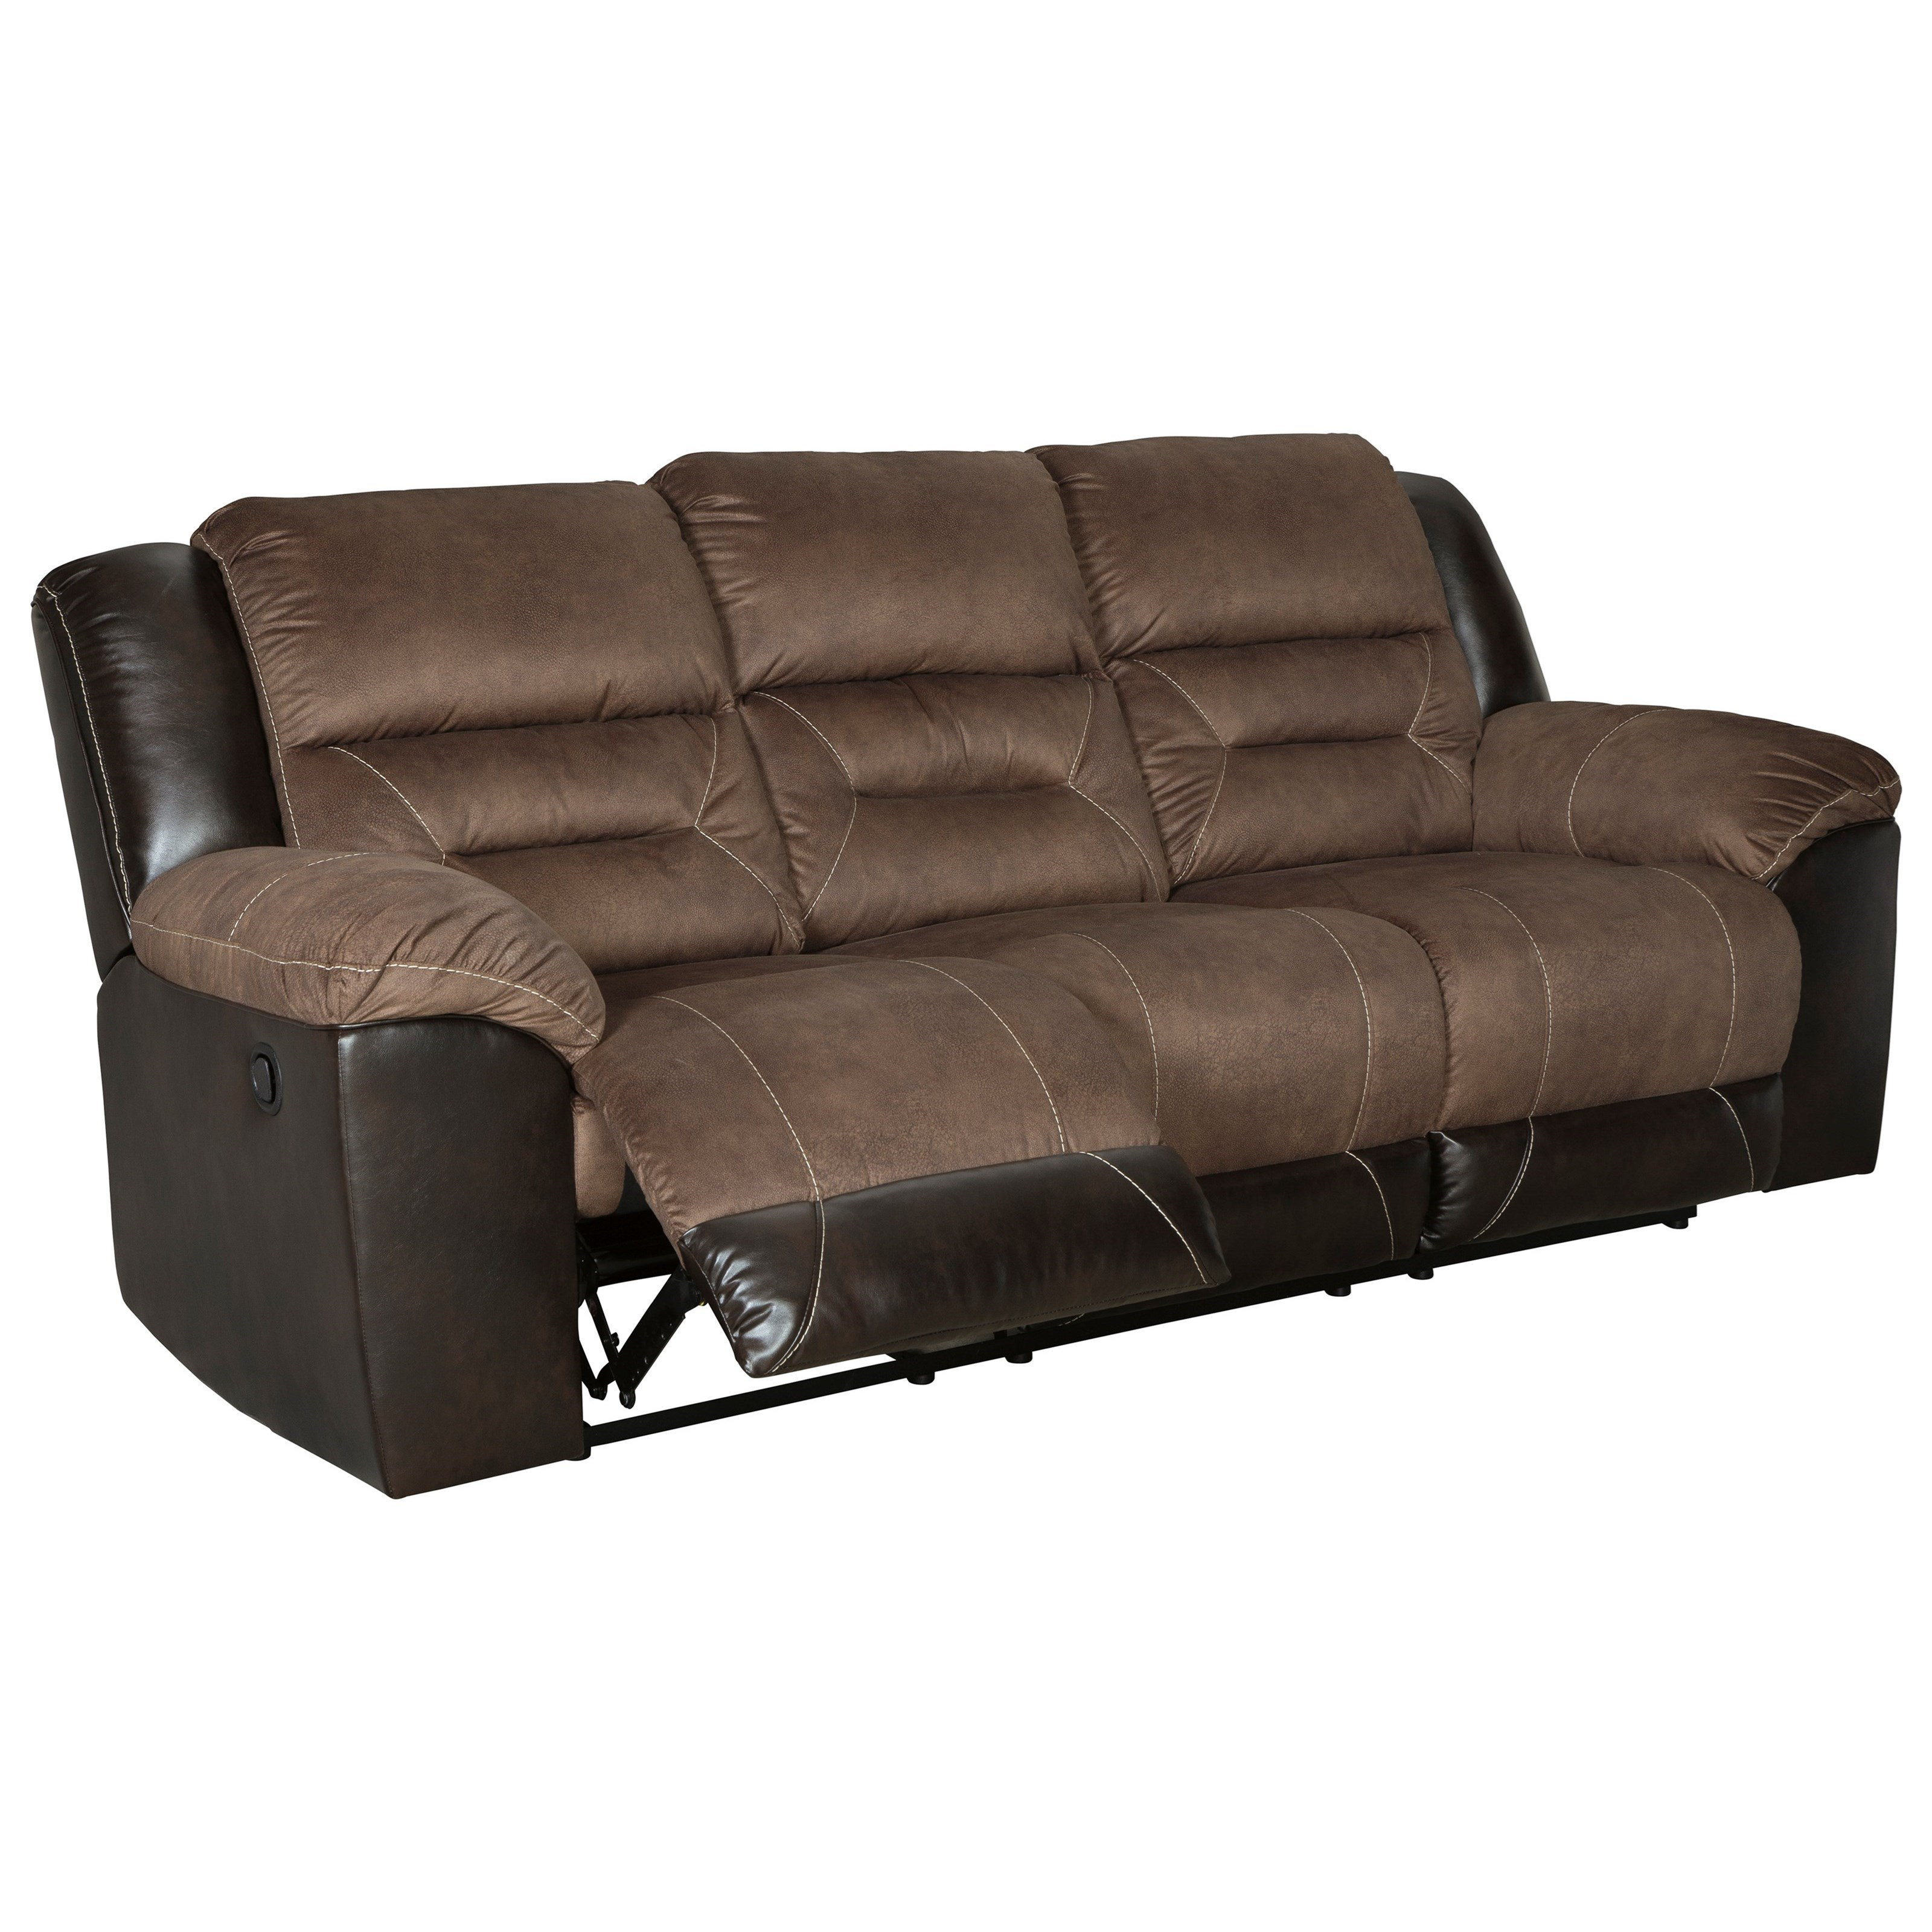 Ashley Furniture Outlet Dallas: StyleLine DALLAS 2910188 Casual Reclining Sofa With Pillow